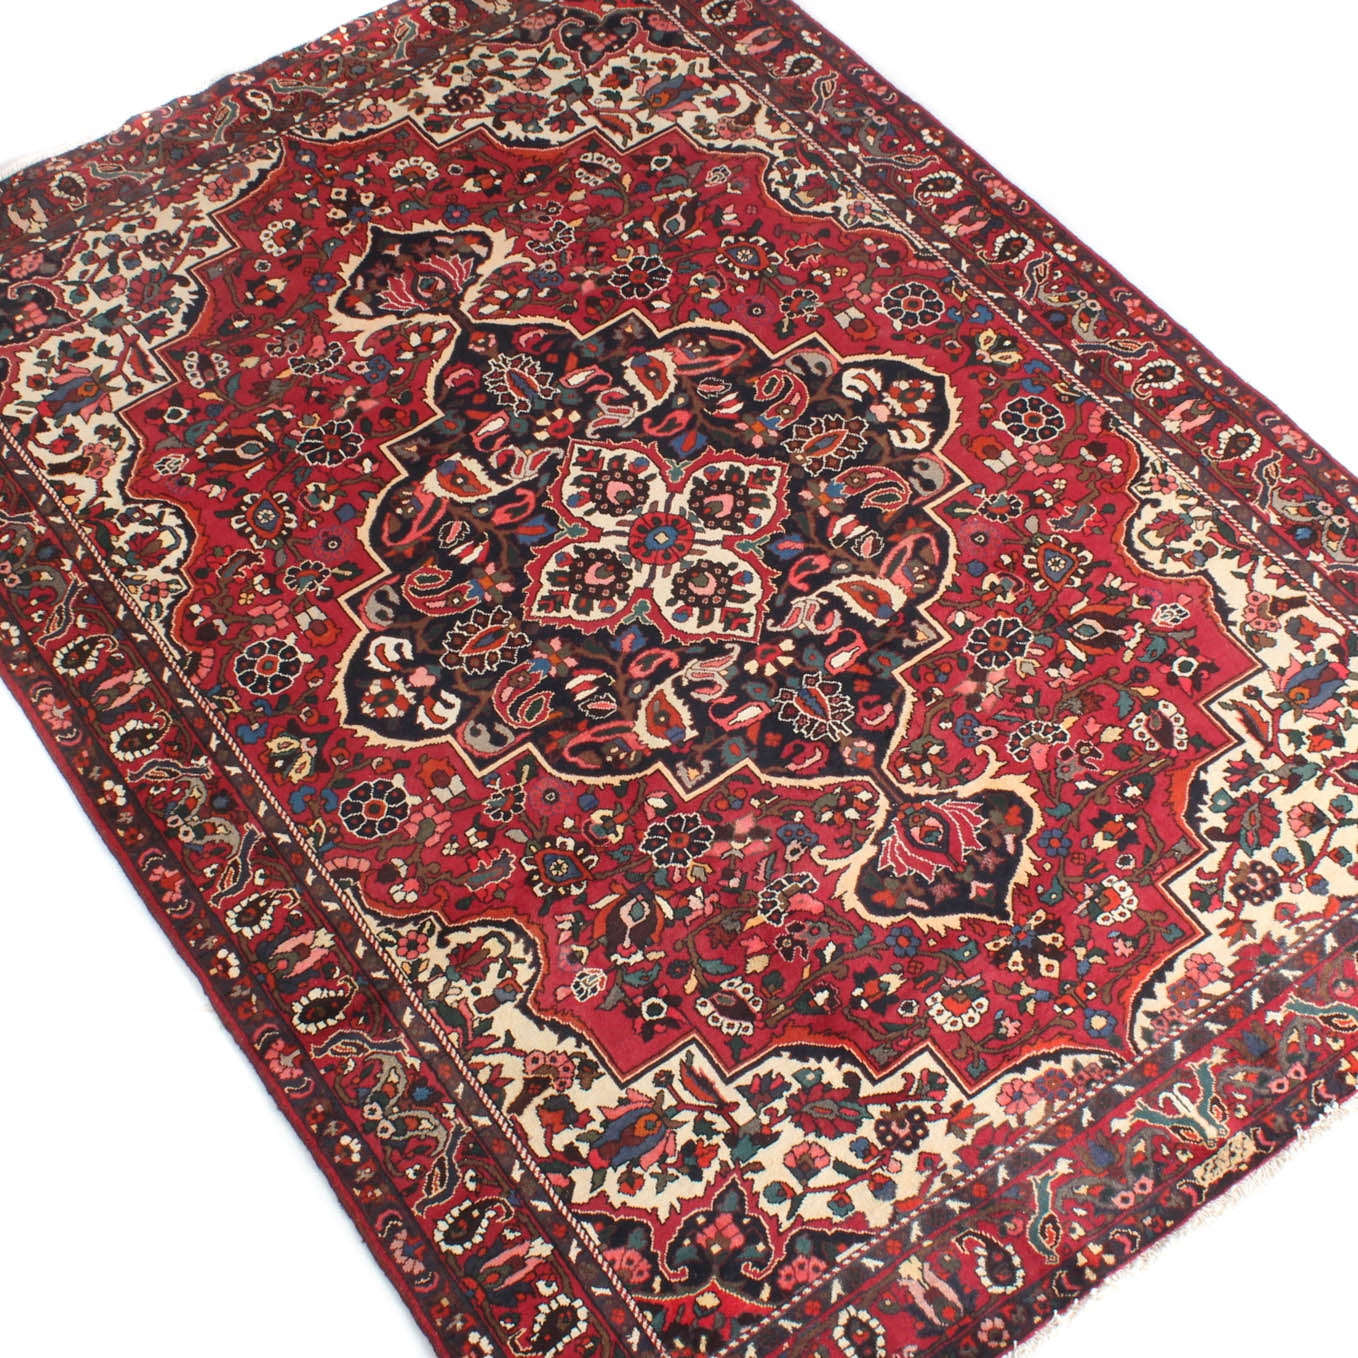 7' x 10' Signed Hand-Knotted Persian Char Mahal Bakhtiari Rug